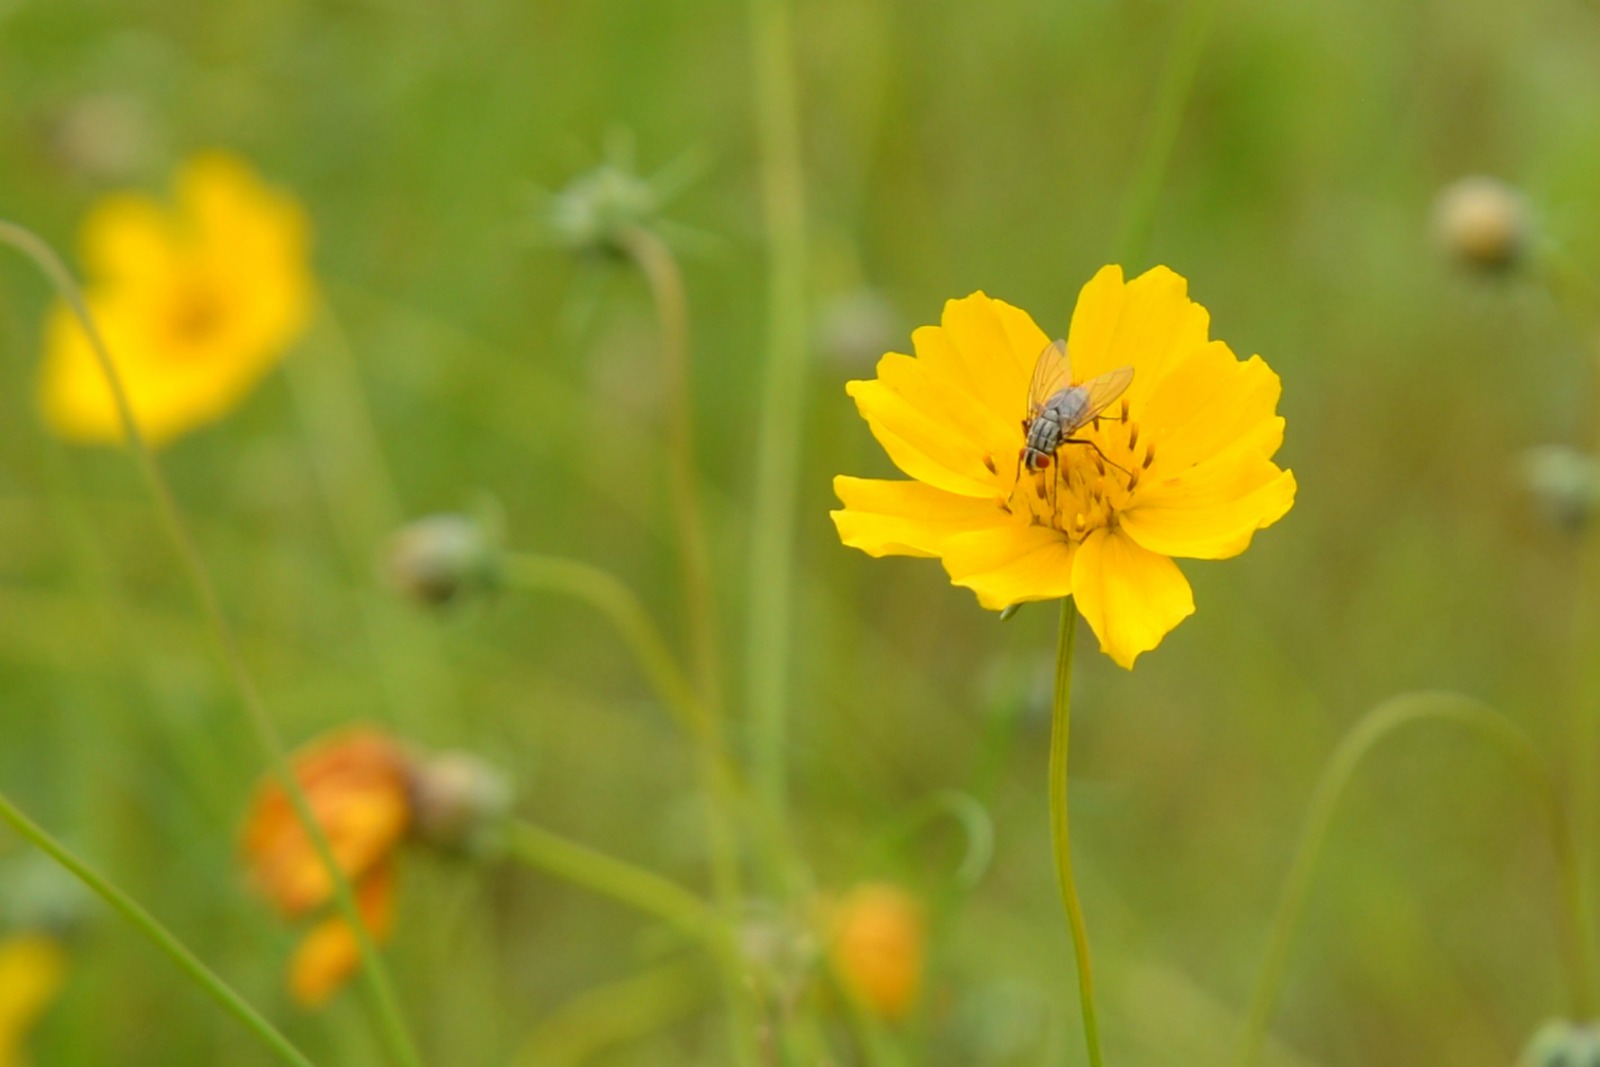 gray Fly on a yellow flower